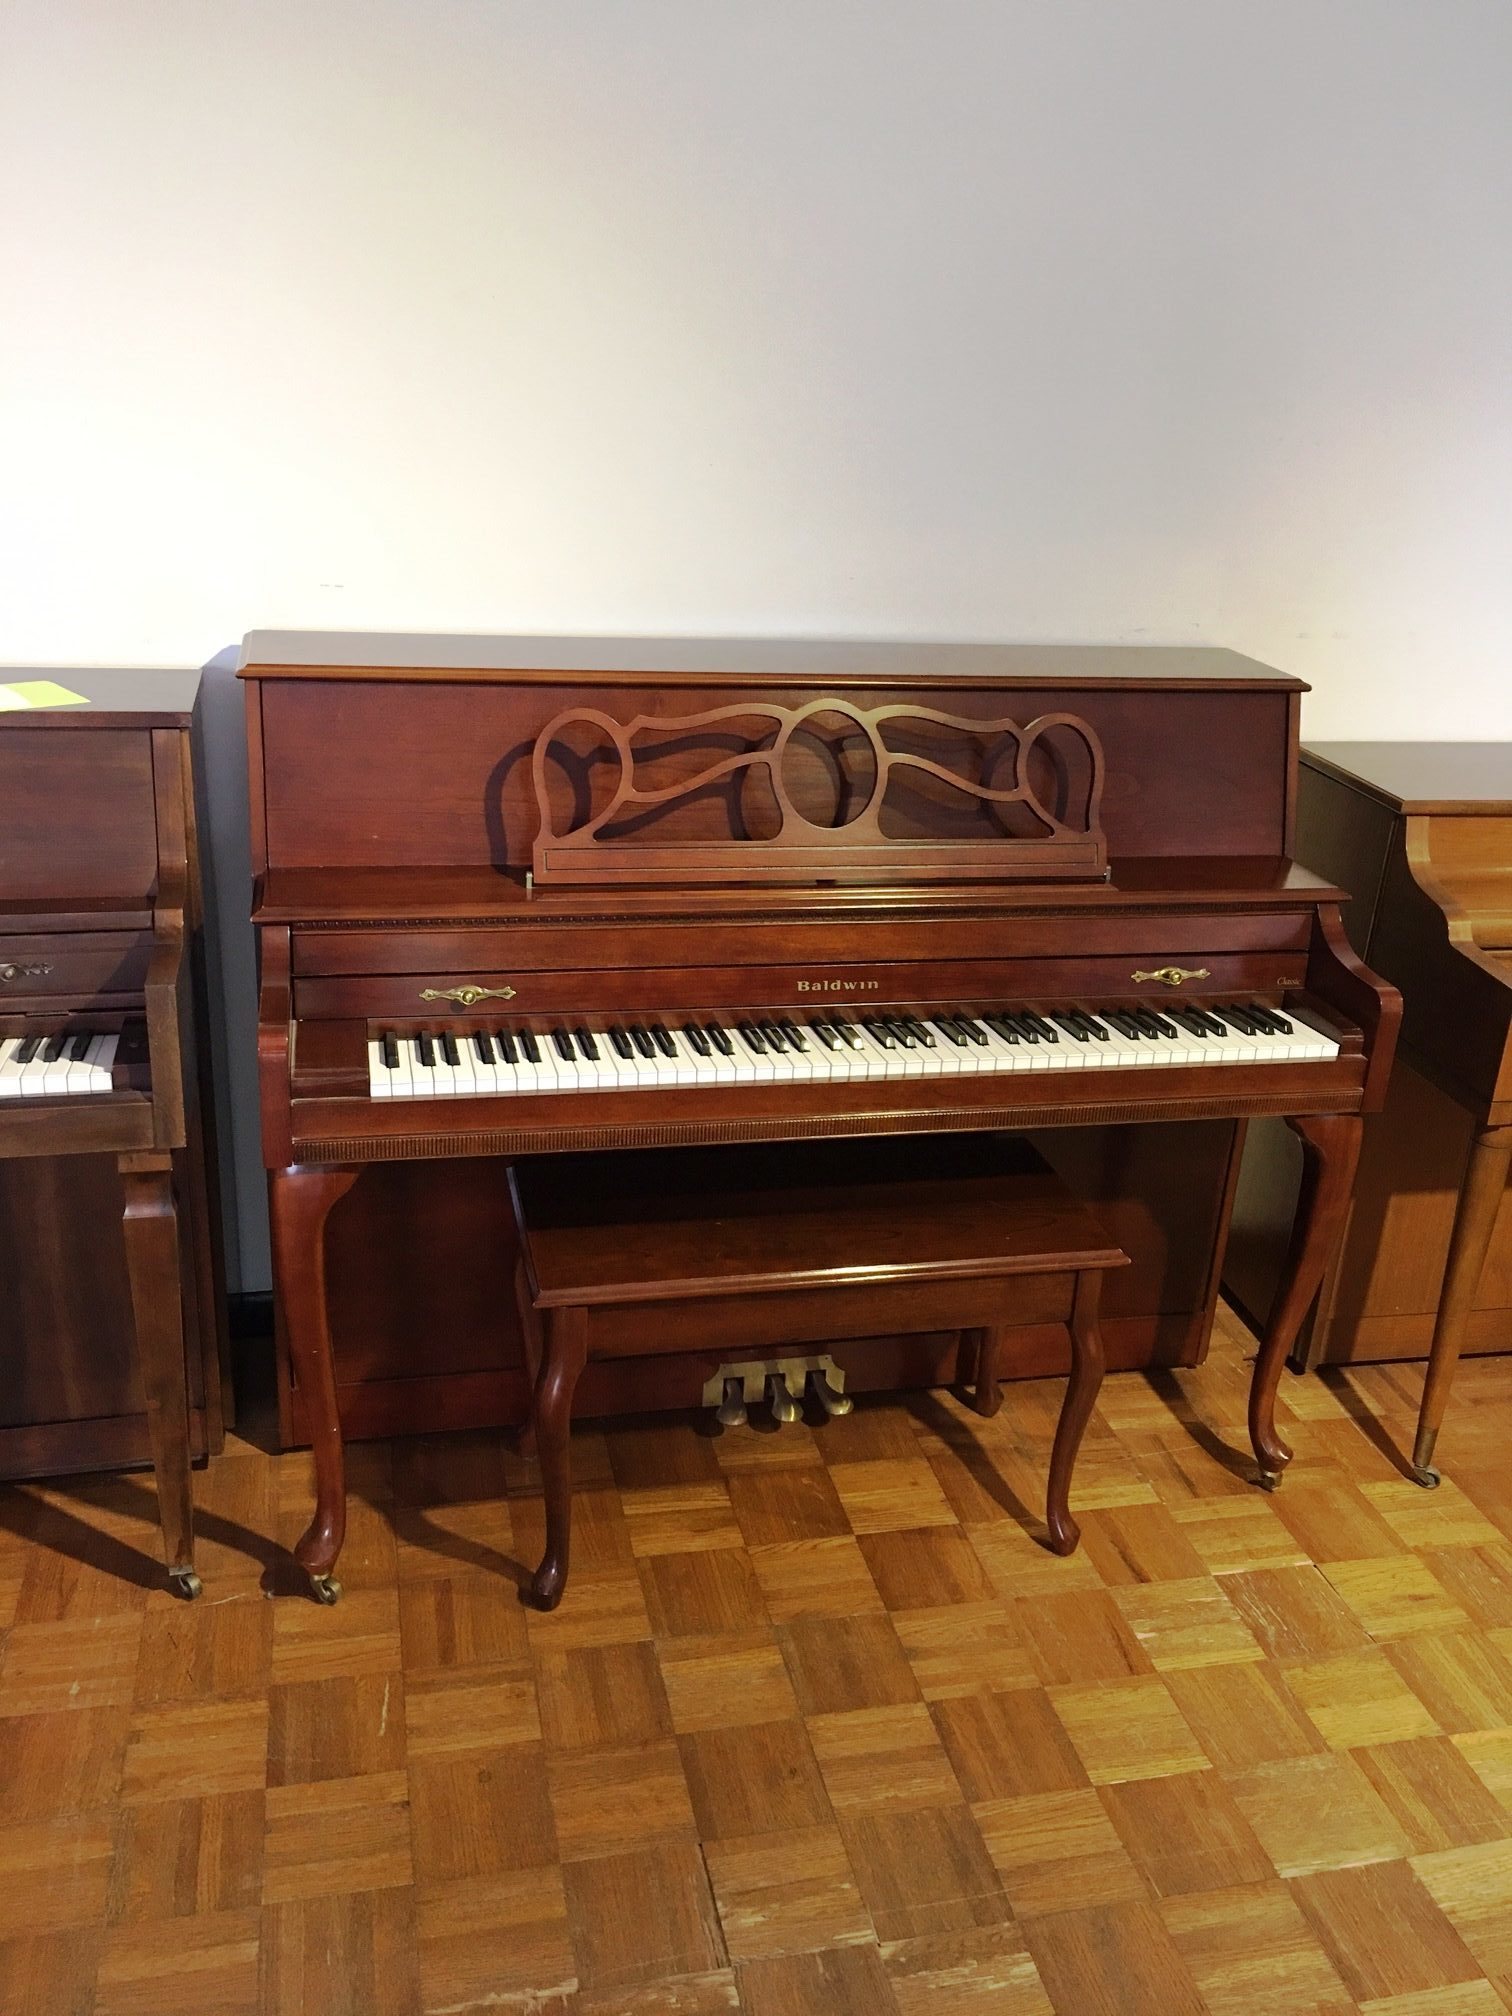 ConsoleMade in 1995$2,350